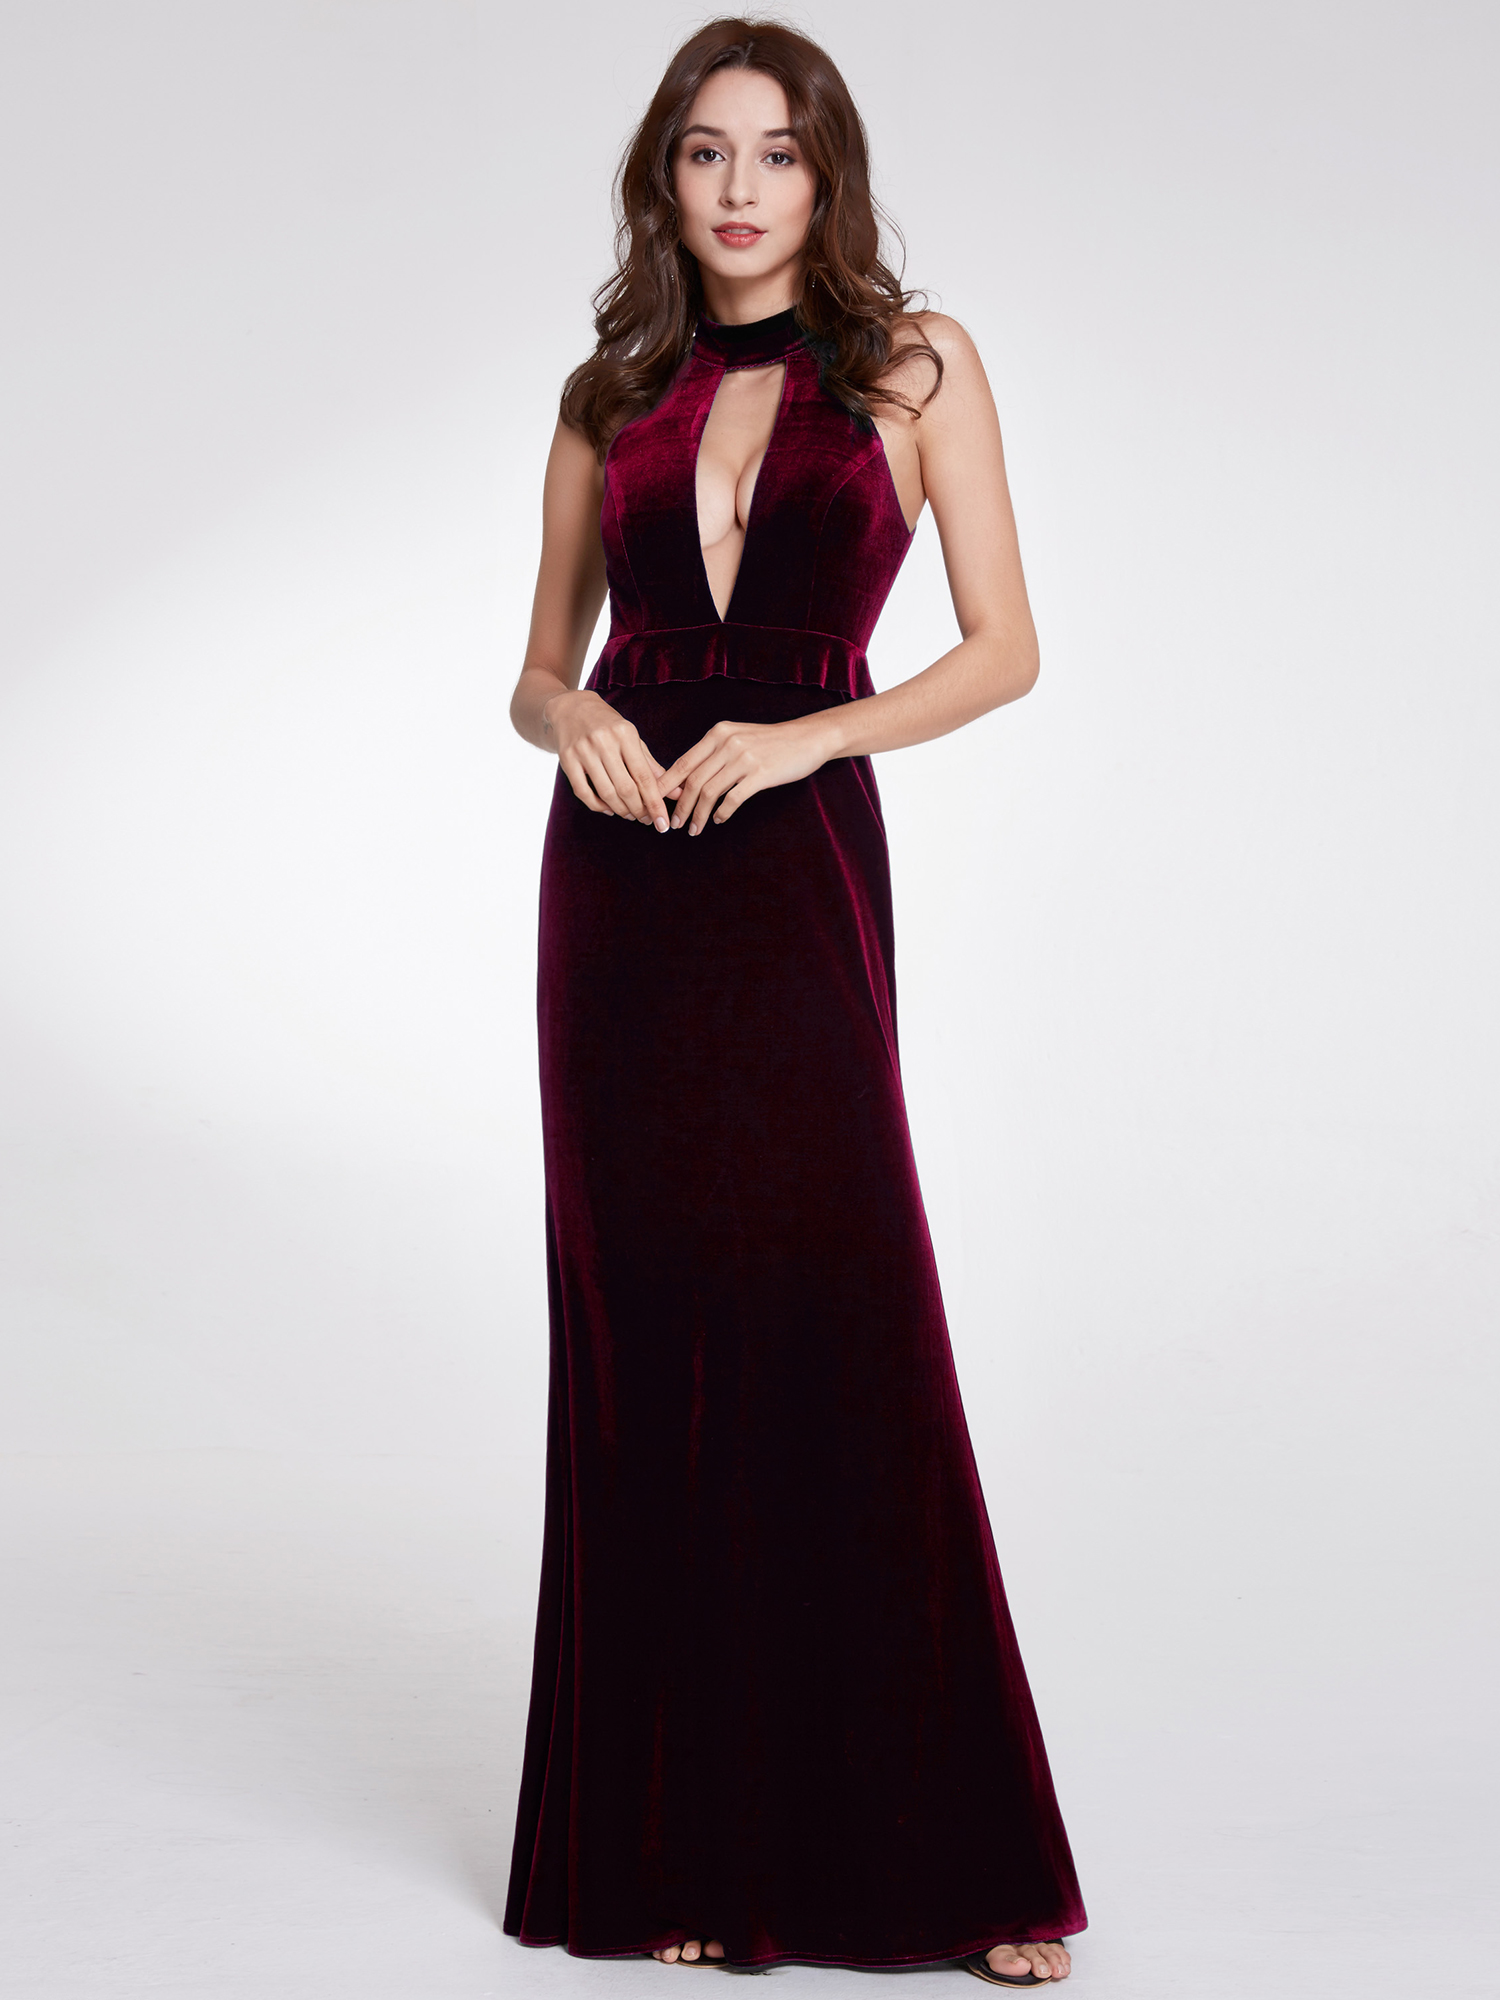 Velvet Evening Gown Cocktail Dress